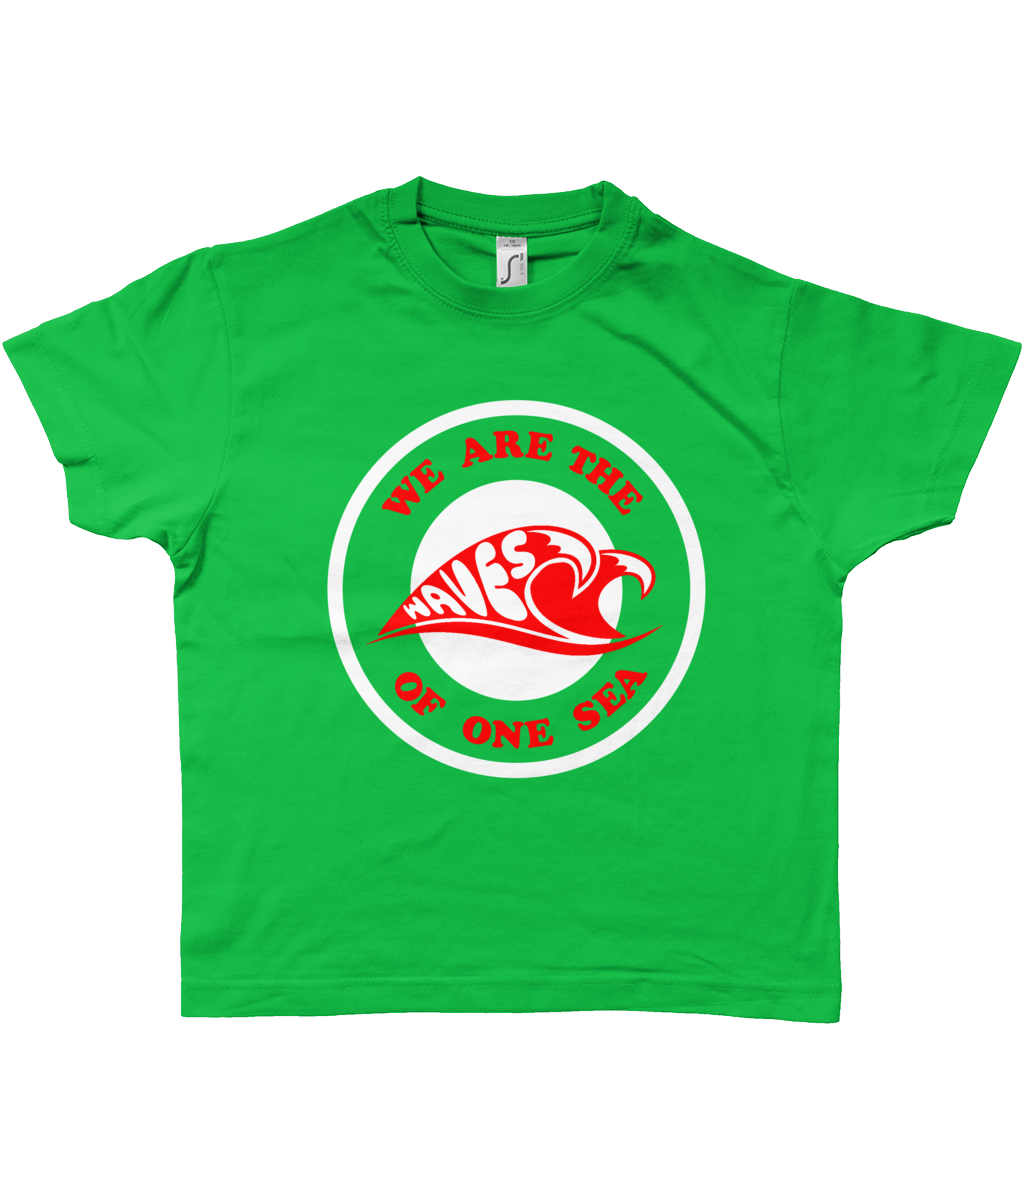 Bojest retro t-shirt for kids 'waves of one sea' on green